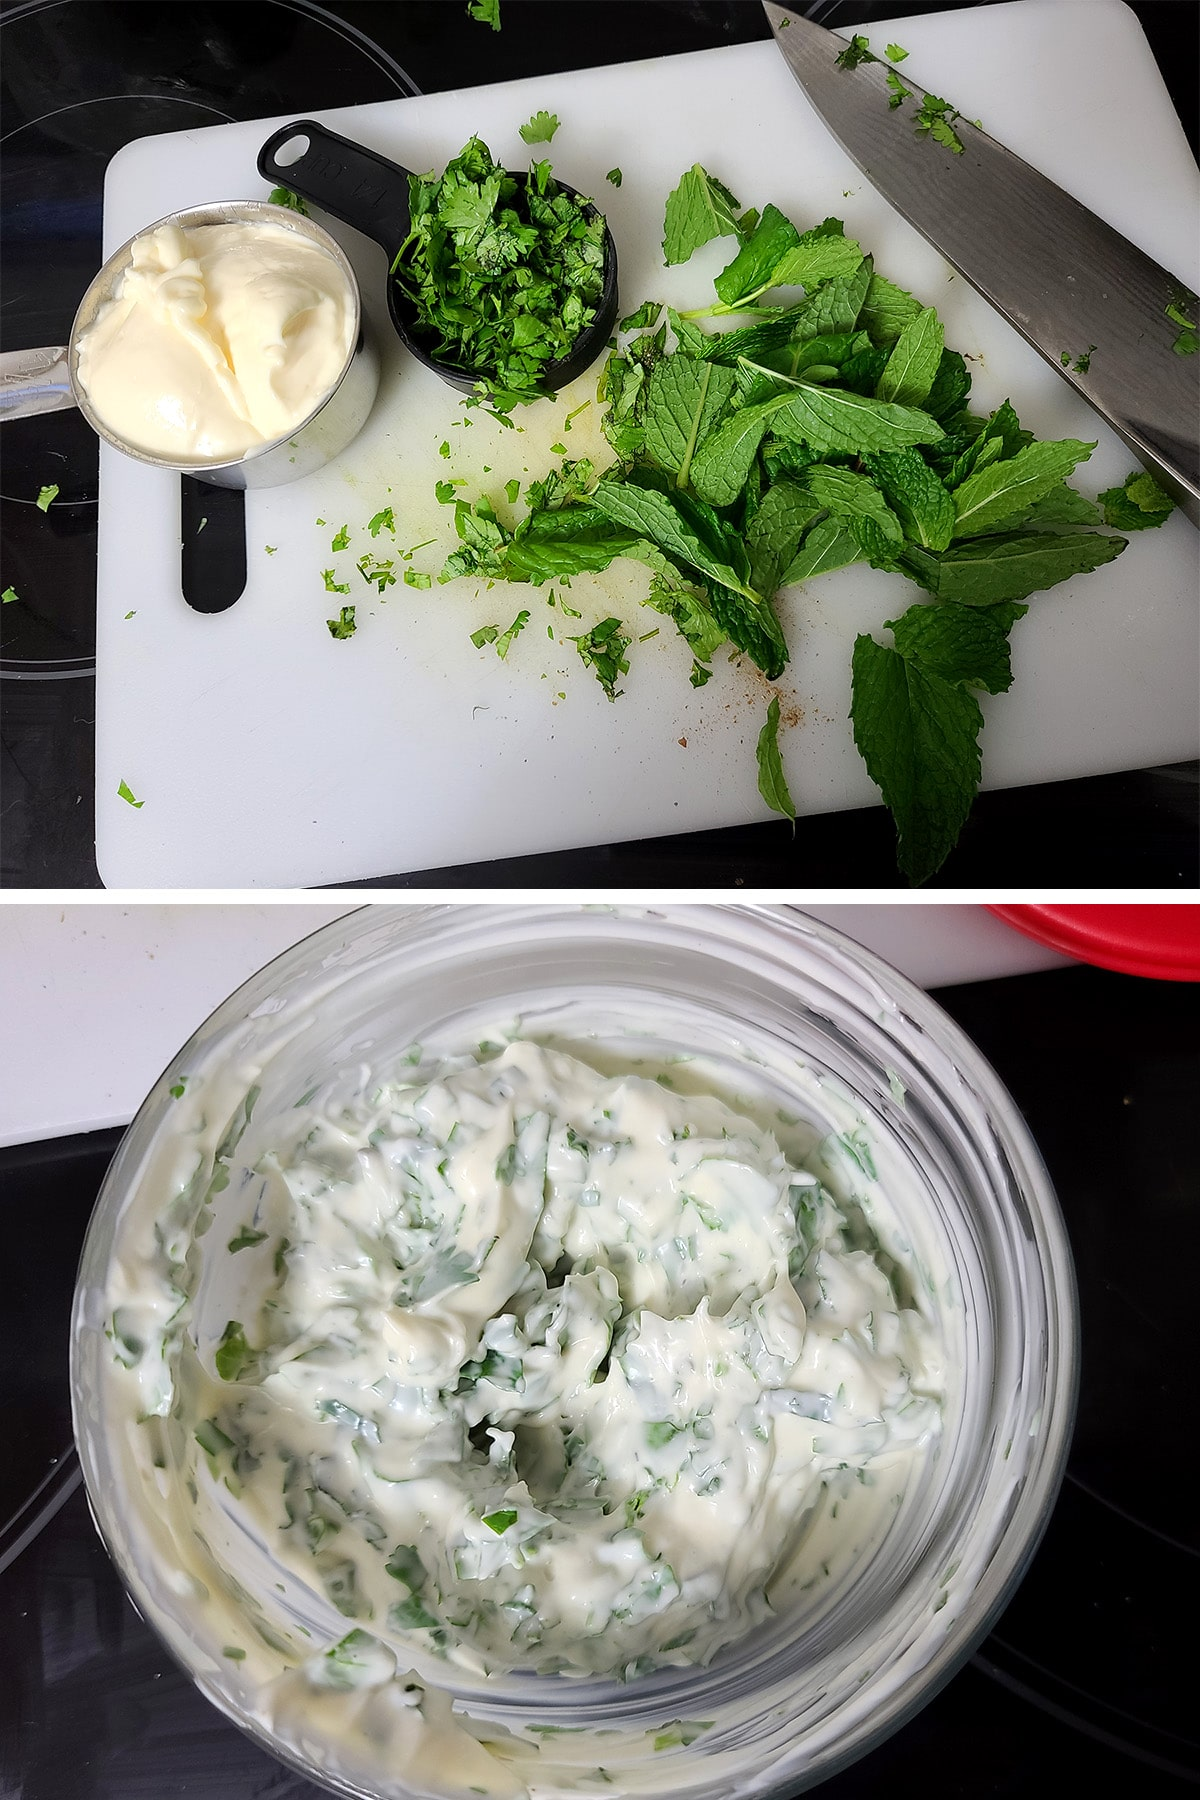 A two part compilation image showing mint and cilantro on a cutting board with a measuring cup of mayo, then all of it stirred together in a glass bowl.